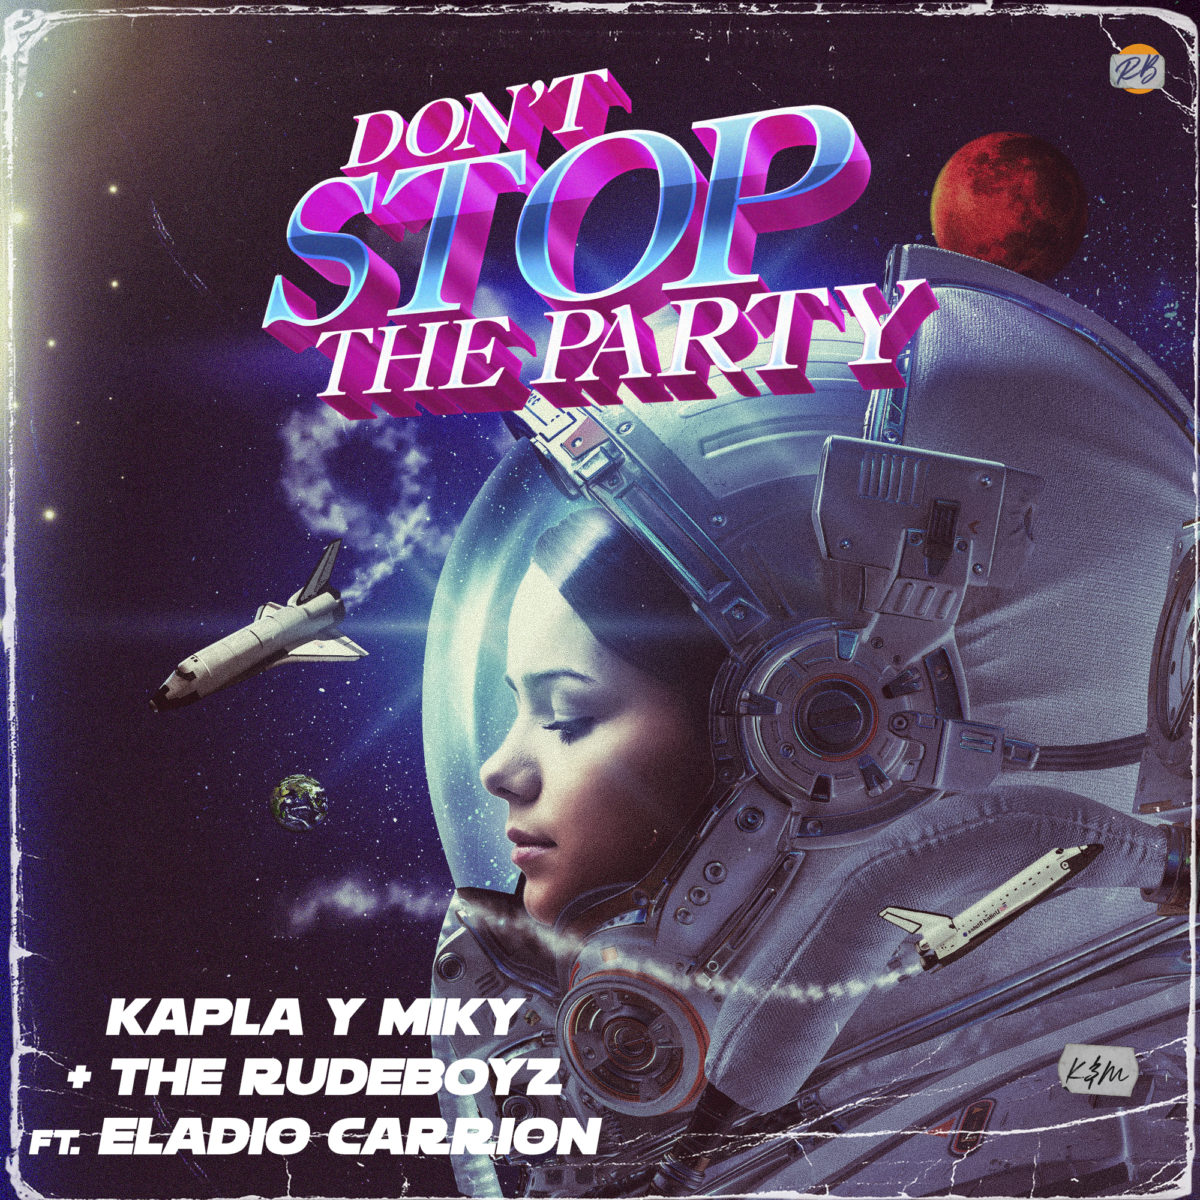 "Kapla y Miky, the Rudeboyz feat Eladio Carrión se unen en ""Don't stop the party"""